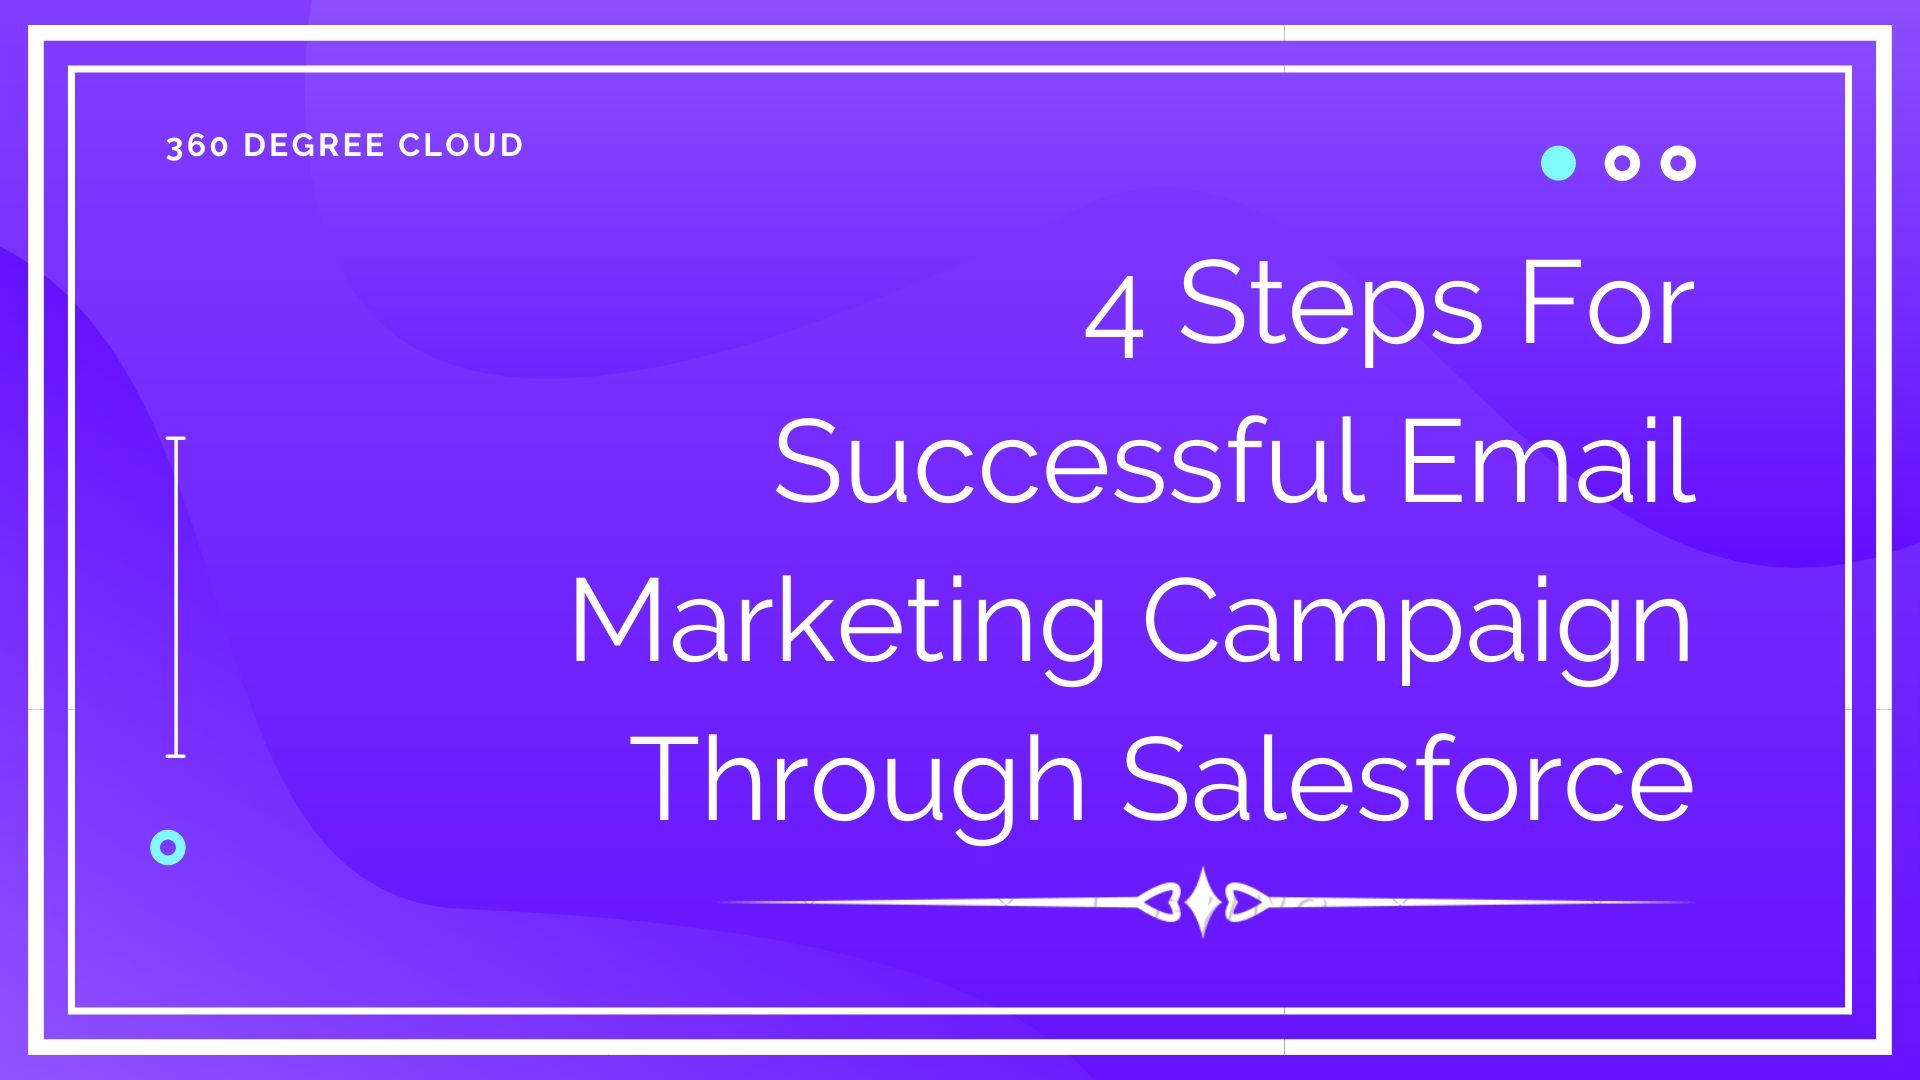 4 Steps to Succeed in the Email Marketing Campaign Through Salesforce